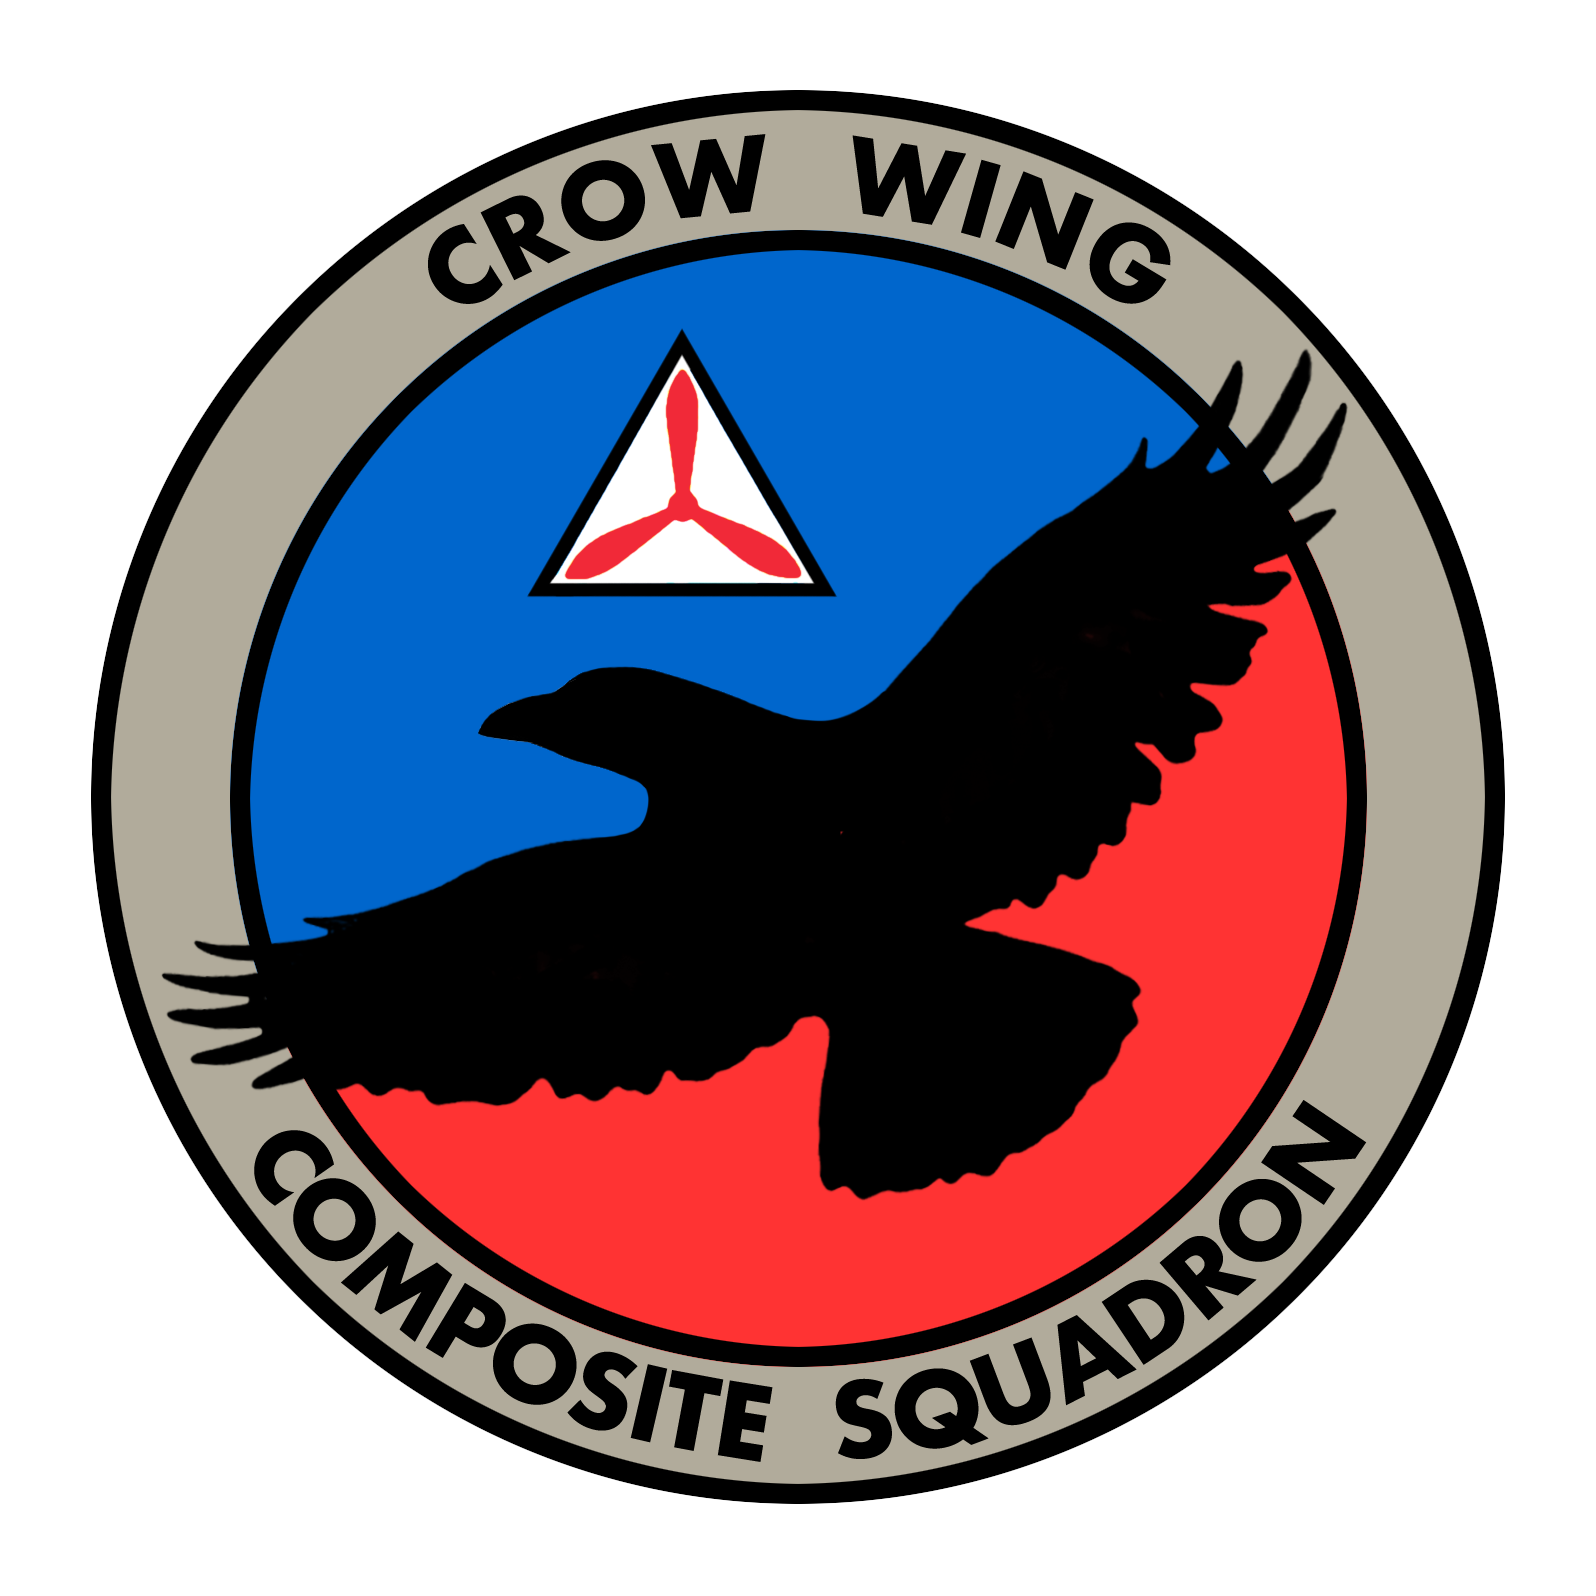 Crow Wing Composite Squadron Logo